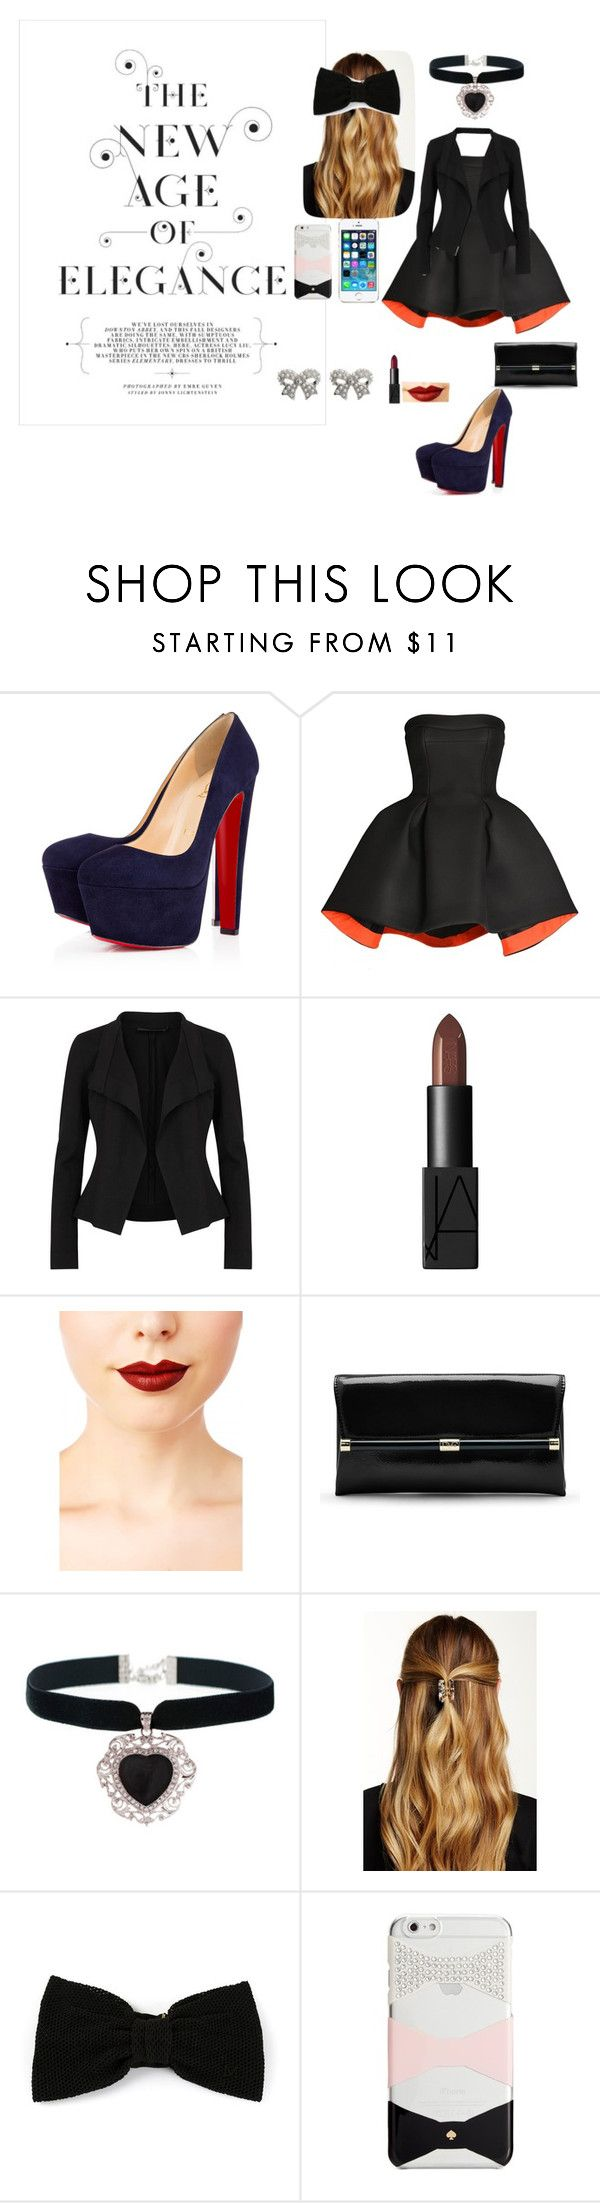 """the new age of elegance"" by blahblah-lv ❤ liked on Polyvore featuring Christian Louboutin, Parlor, Donna Karan, FingerPrint Jewellry, NARS Cosmetics, Jeffree Star, Diane Von Furstenberg, Rock 'N Rose, Natasha Accessories and Maison Michel"